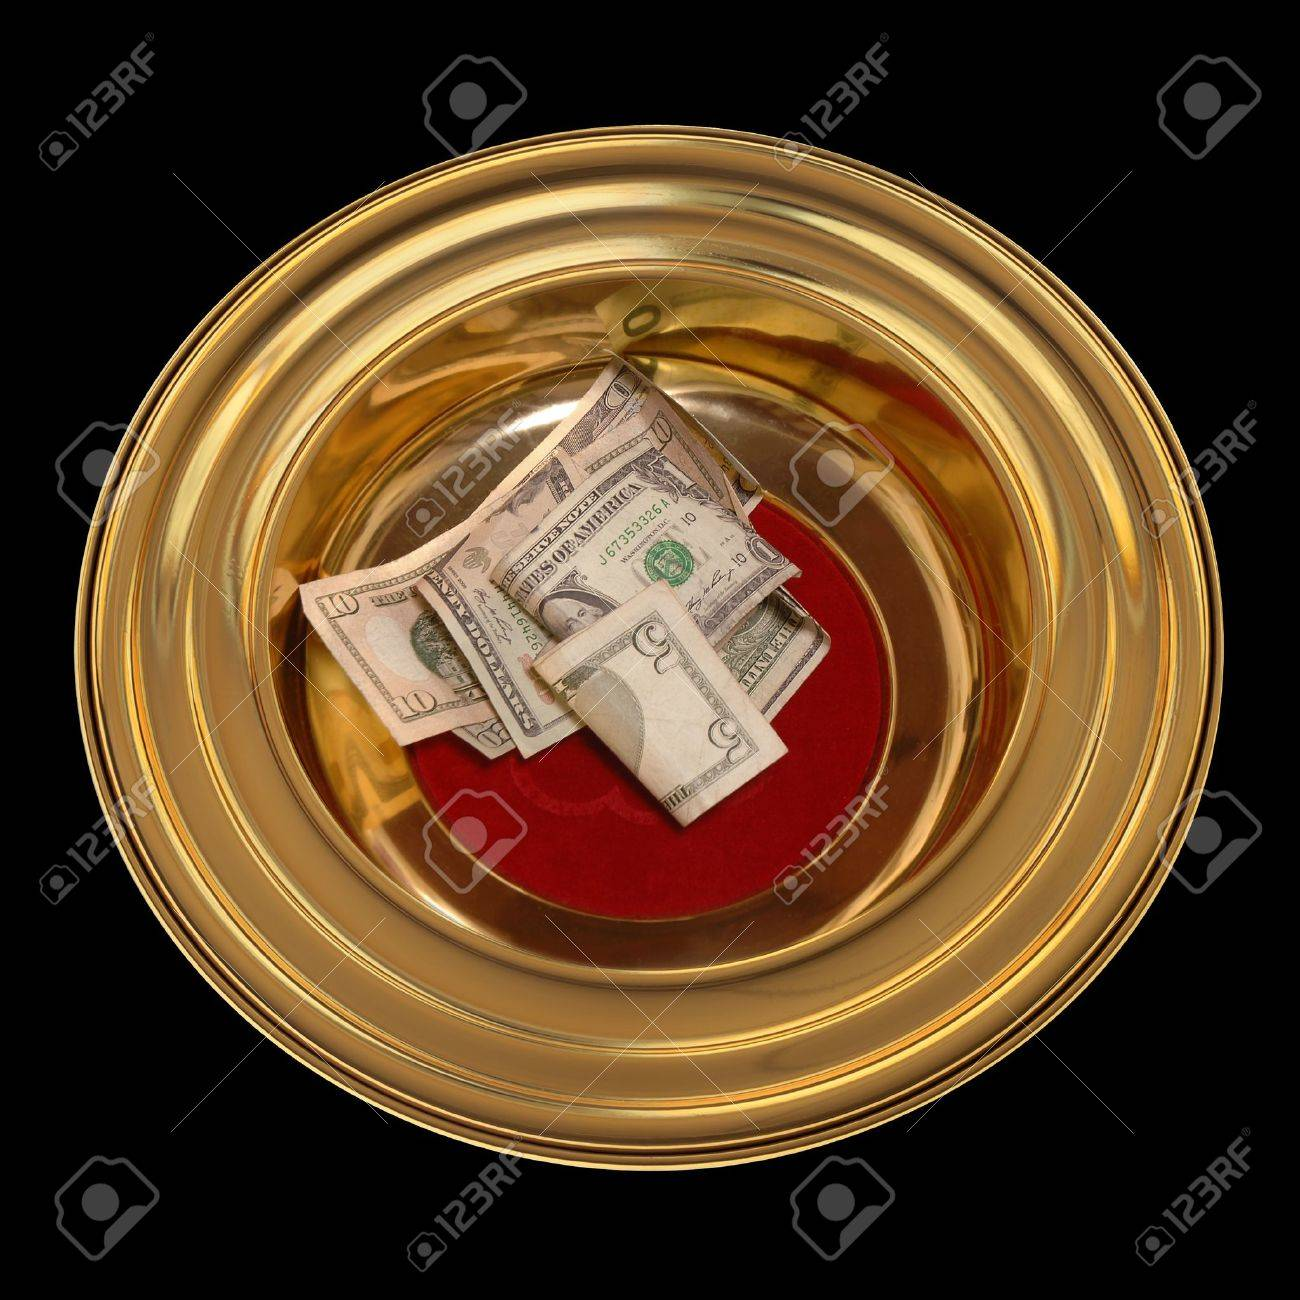 Church offering plate with some currency in it Stock Photo - 15440283